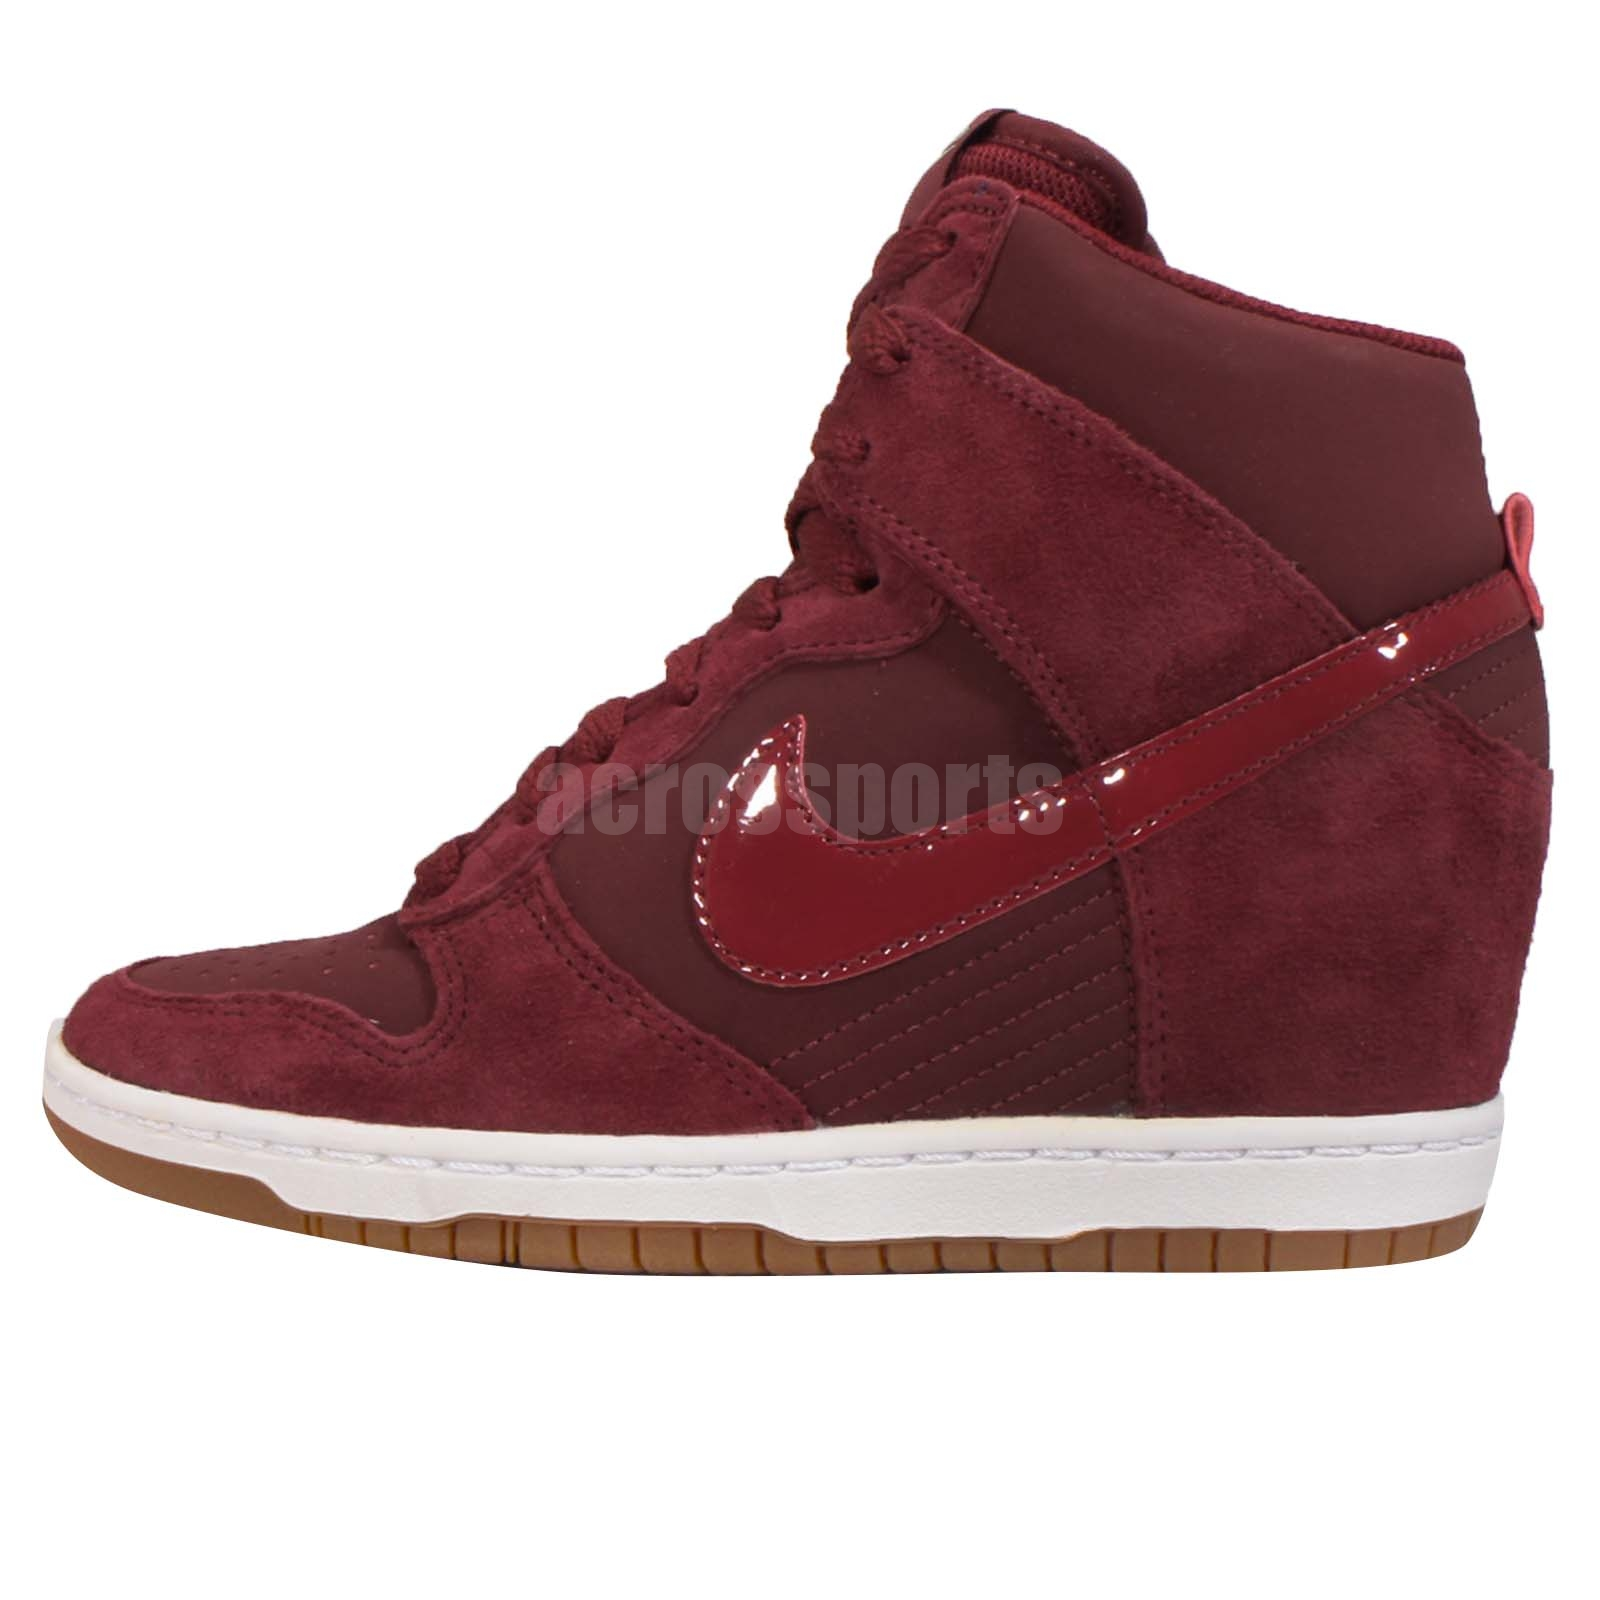 wholesale dealer e1cda e20d4 ... Wmns Nike Dunk Sky Hi Essential Red Brown Womens Fashion Wedge Shoes  644877-603 ...